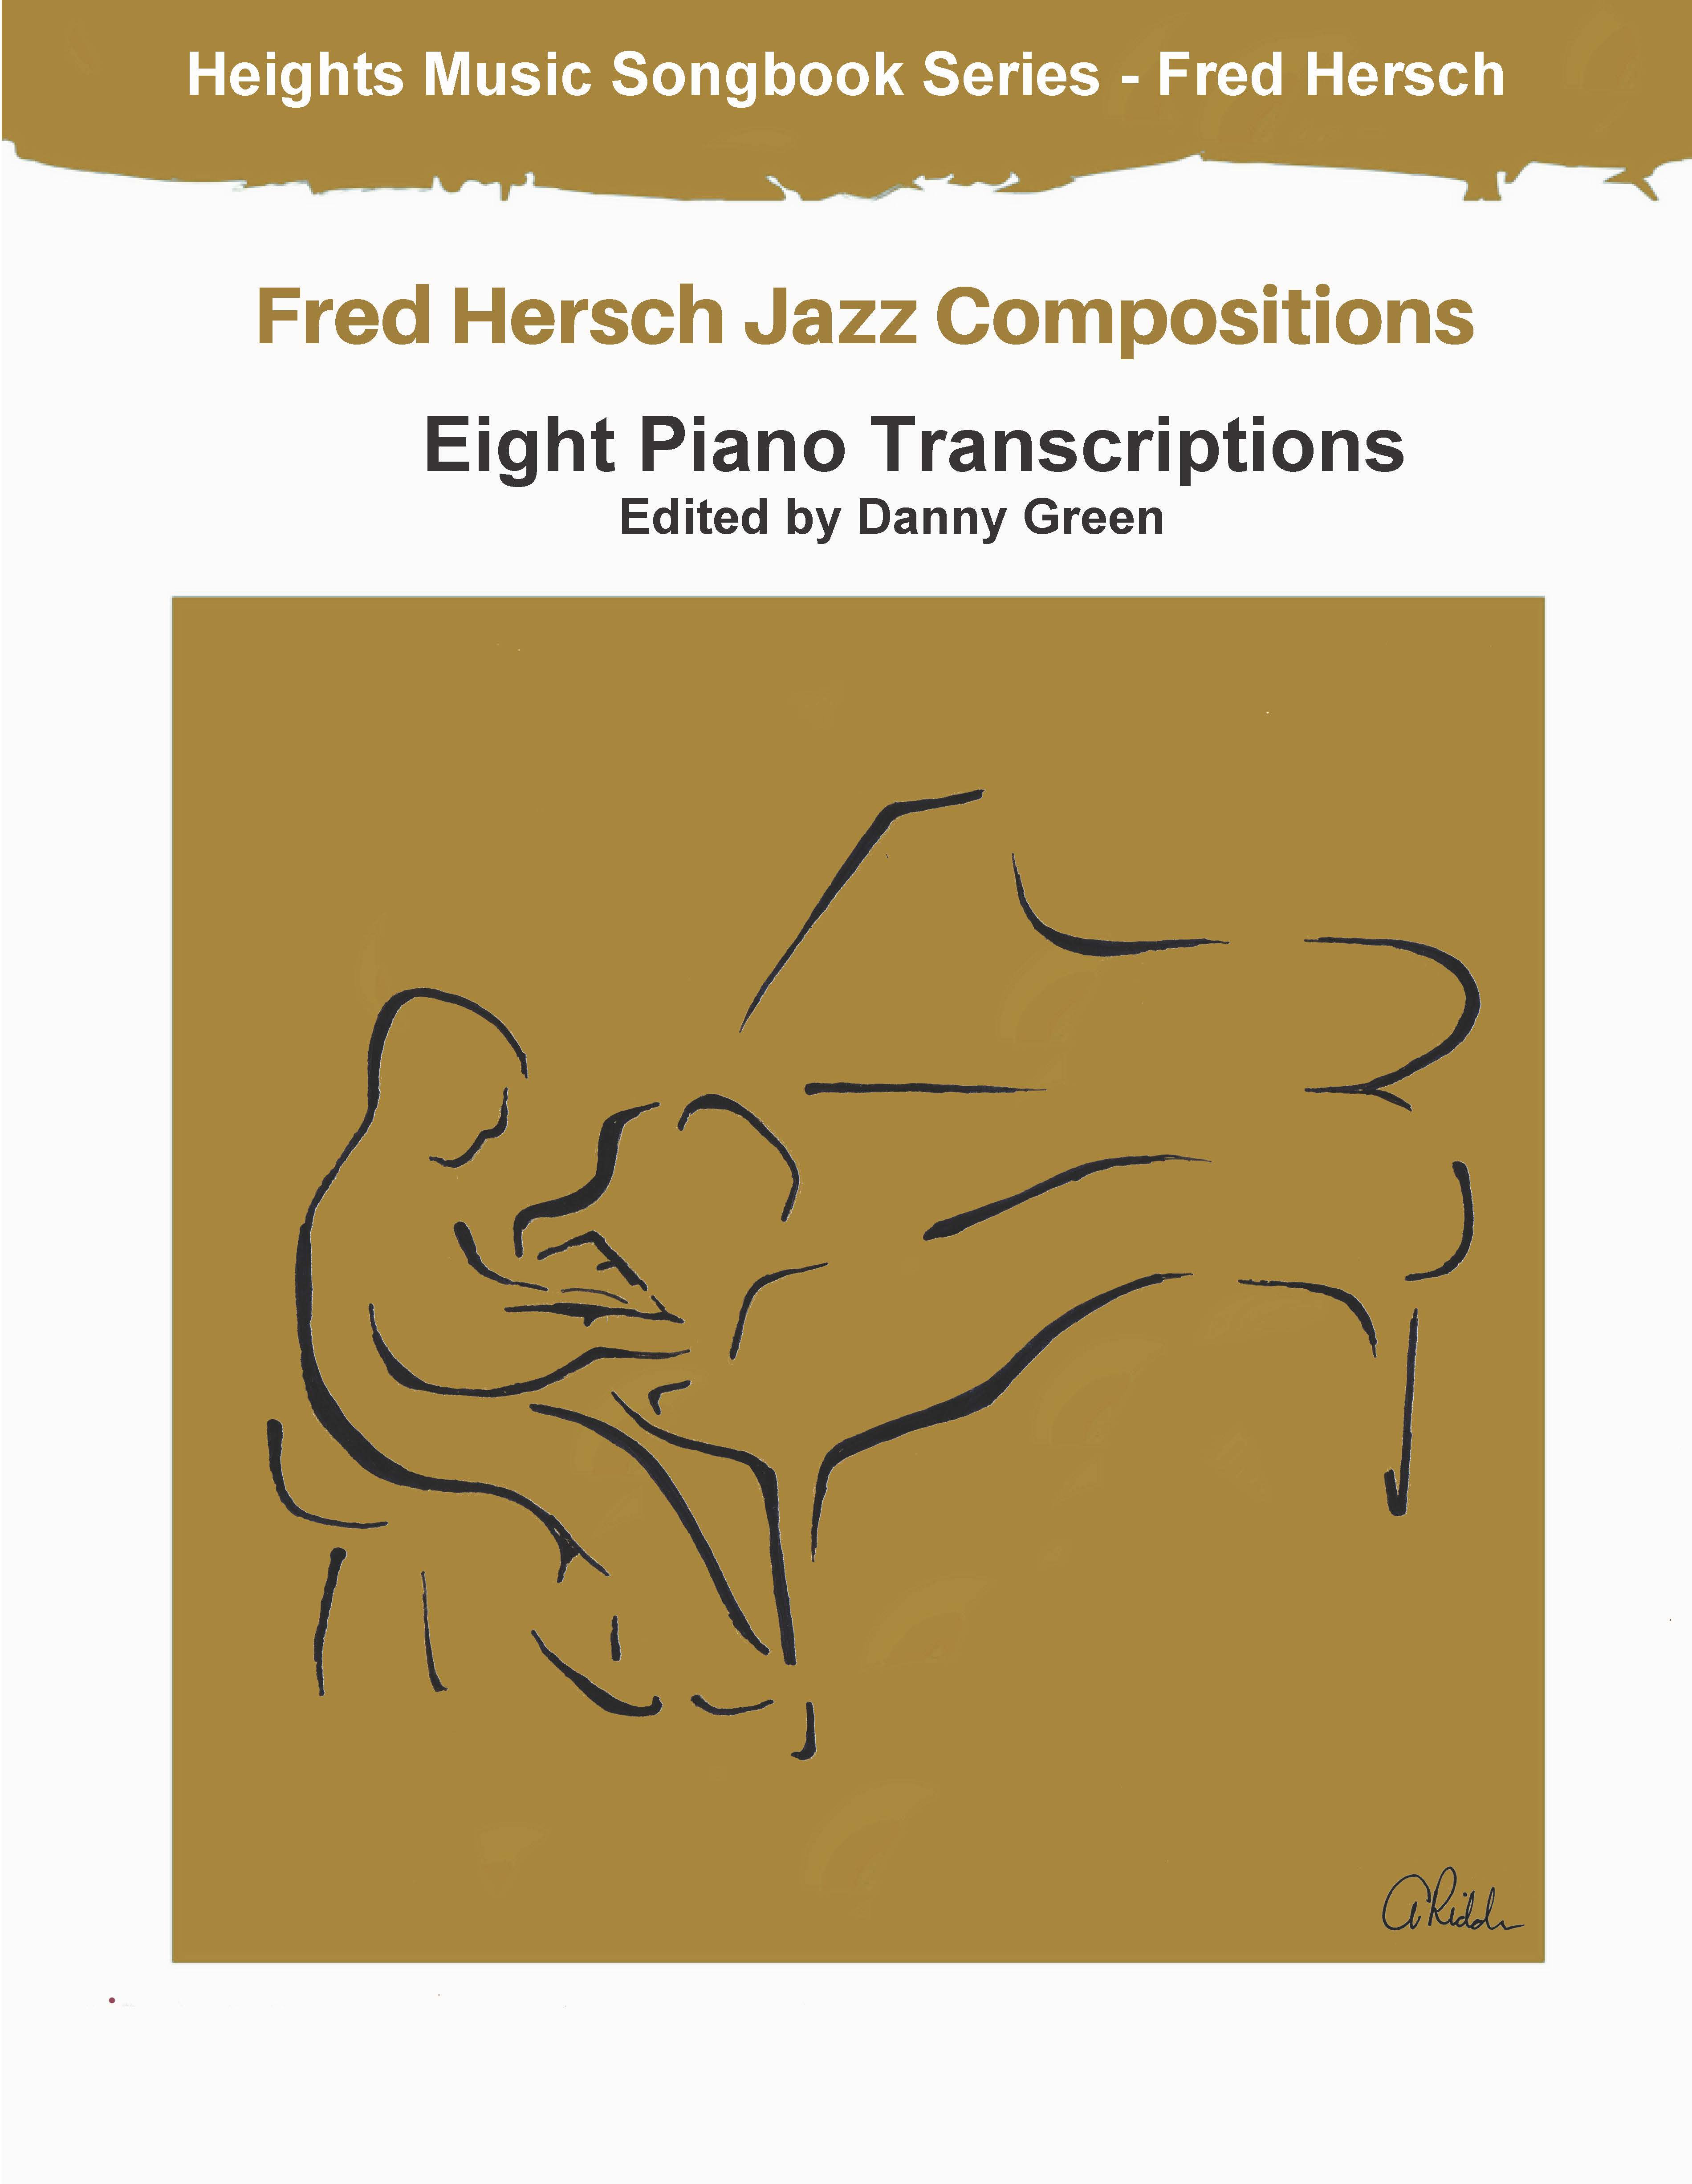 Fred Hersch 8 Piano Transcriptions pdf download